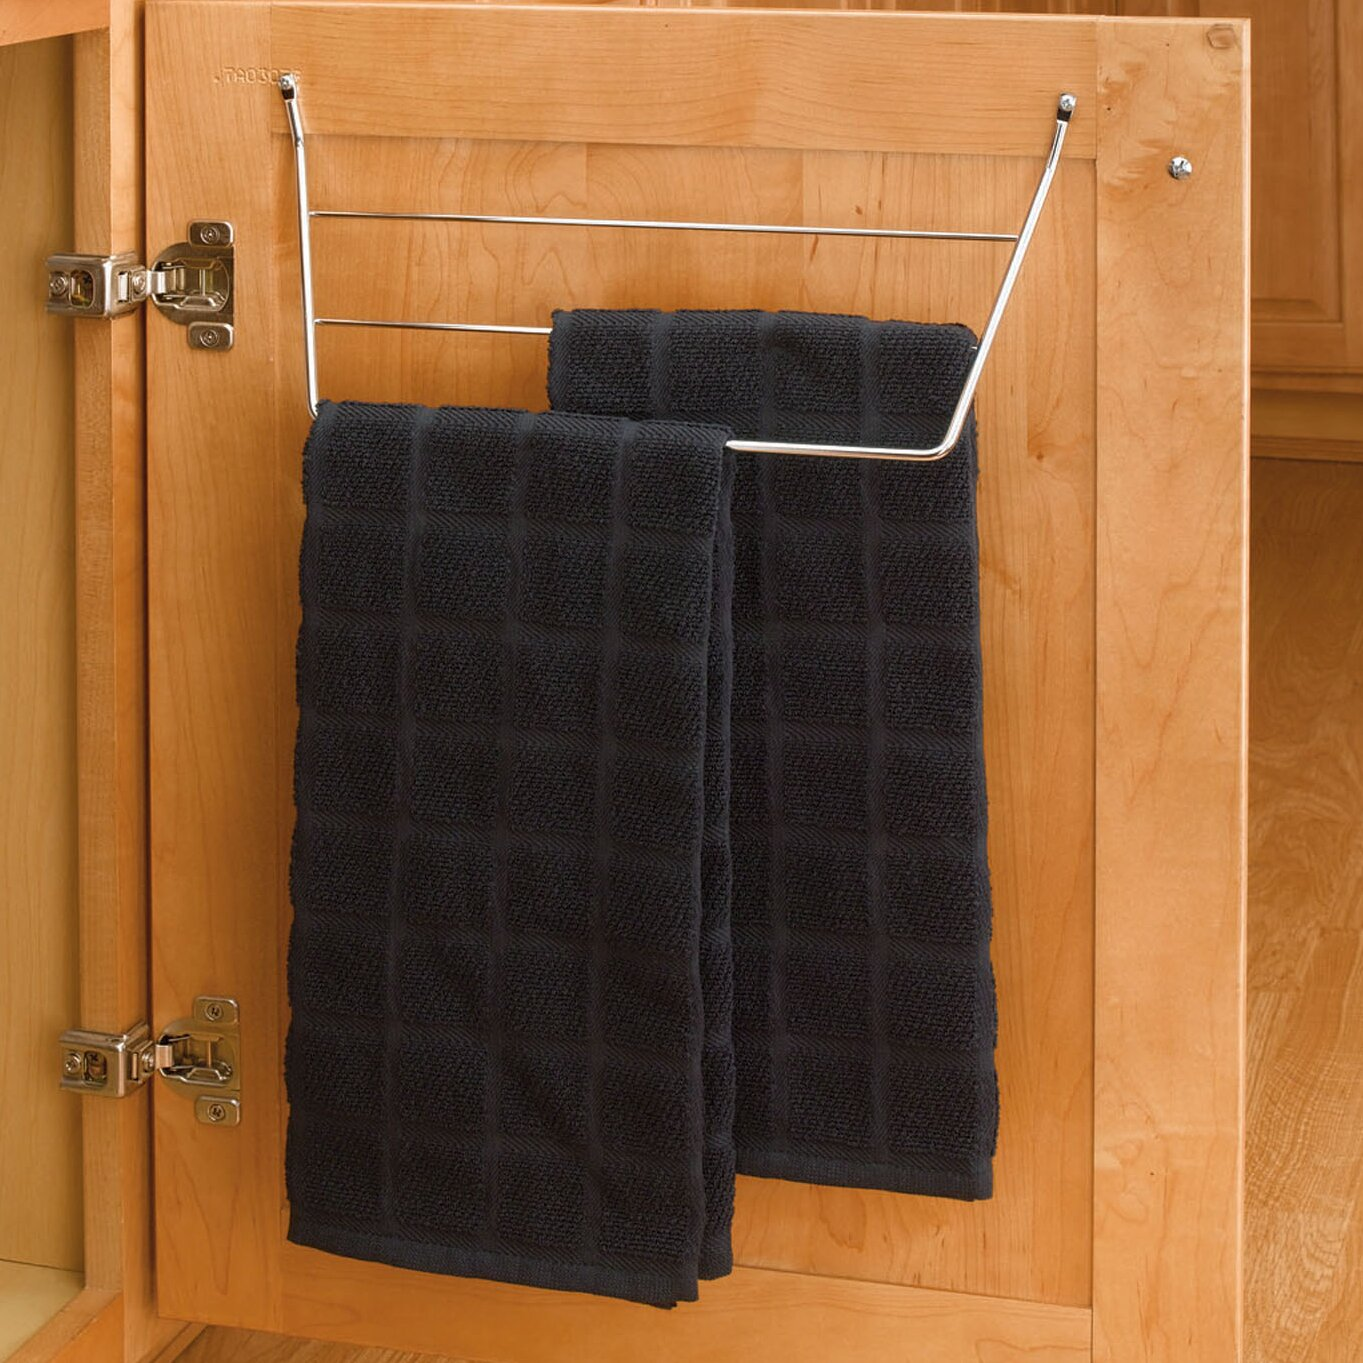 Over The Door Towel Rack Bathroom: Rev-A-Shelf Over-the-Door Towel Rack & Reviews